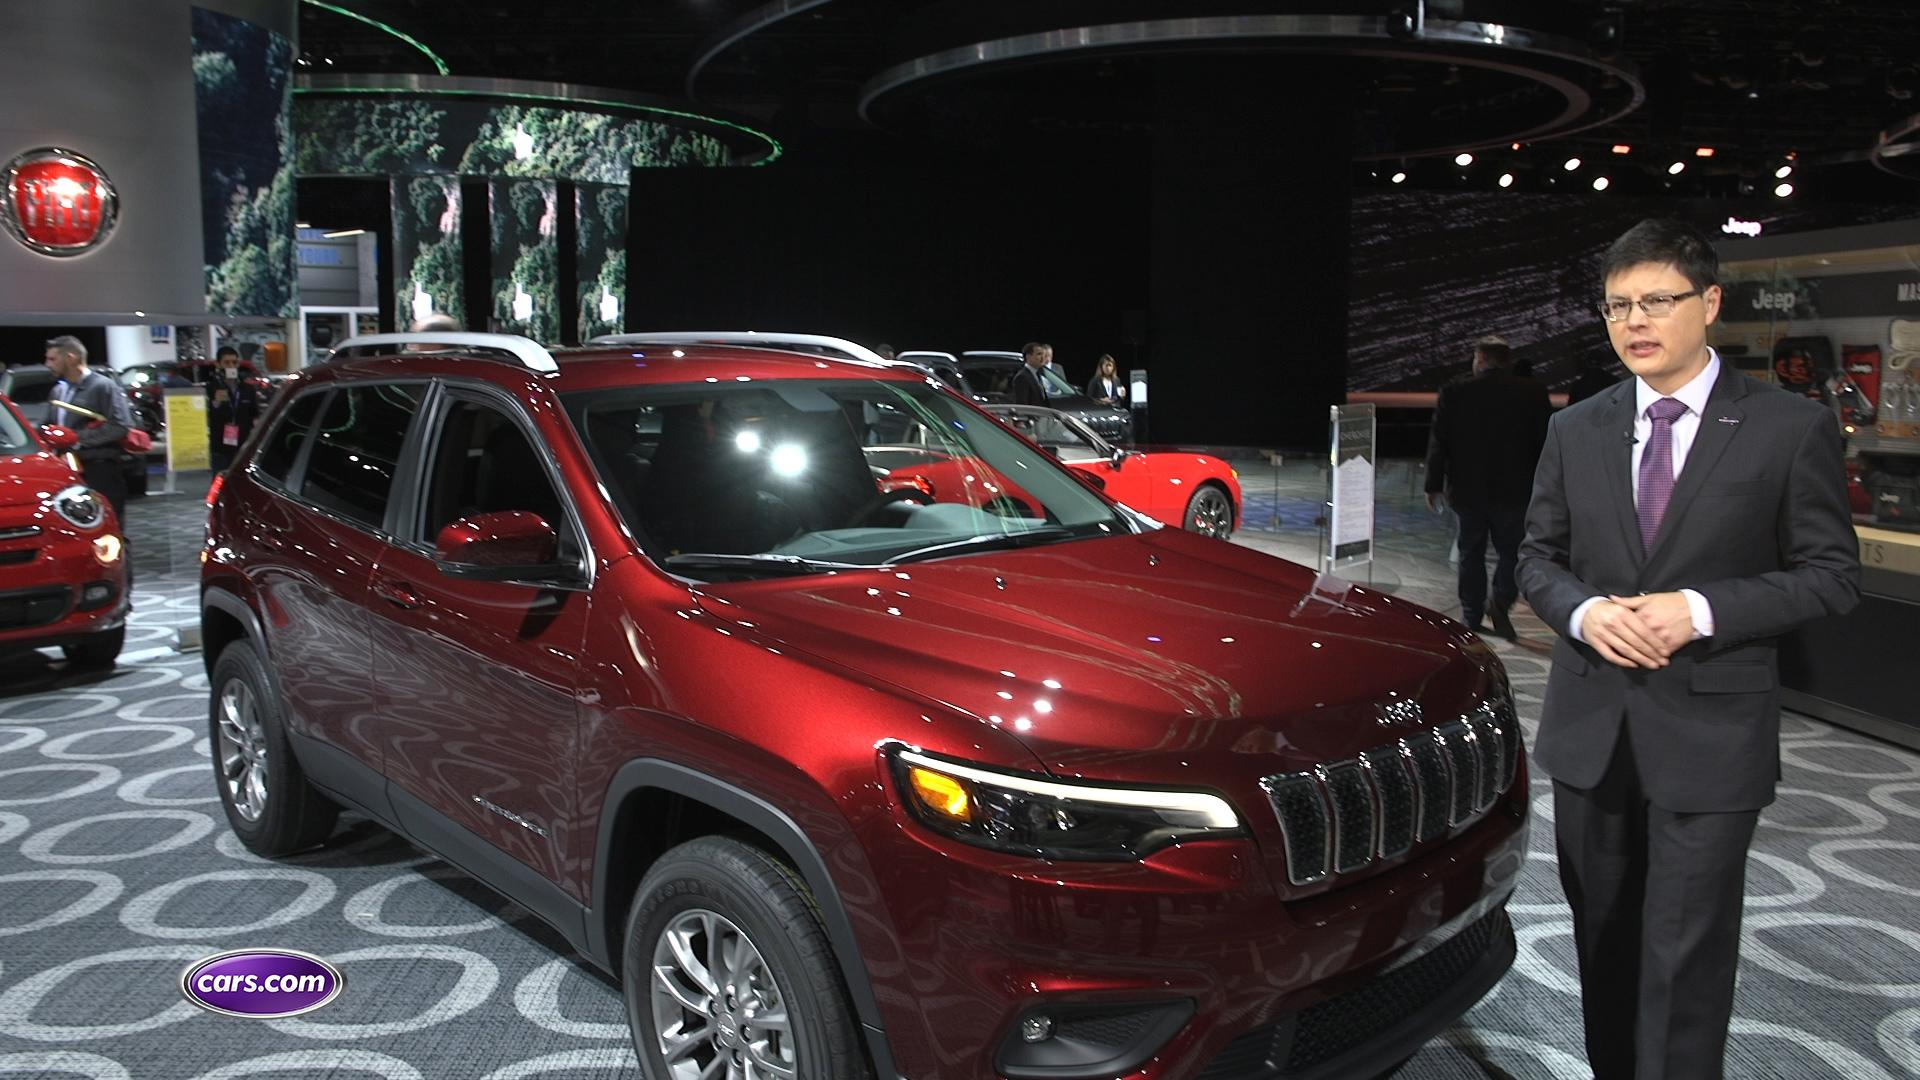 Video: Jeep Puts Best Face Forward With 2019 Cherokee Redesign — Cars.com